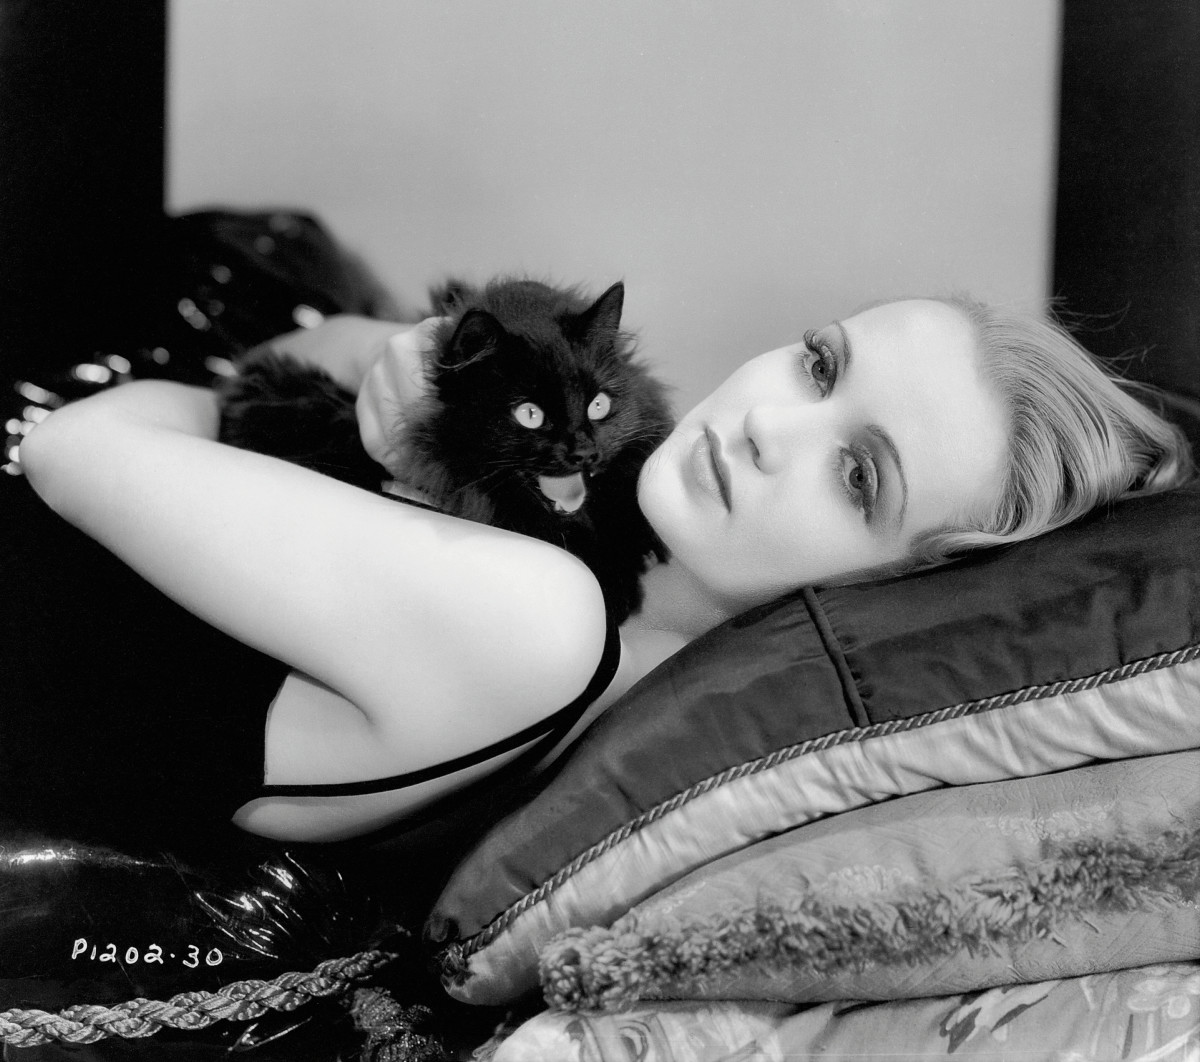 Carole Lombard, 1932. Seen here posing with a black cat in a studio publicity shot. (Photo: John Kobal Foundation)